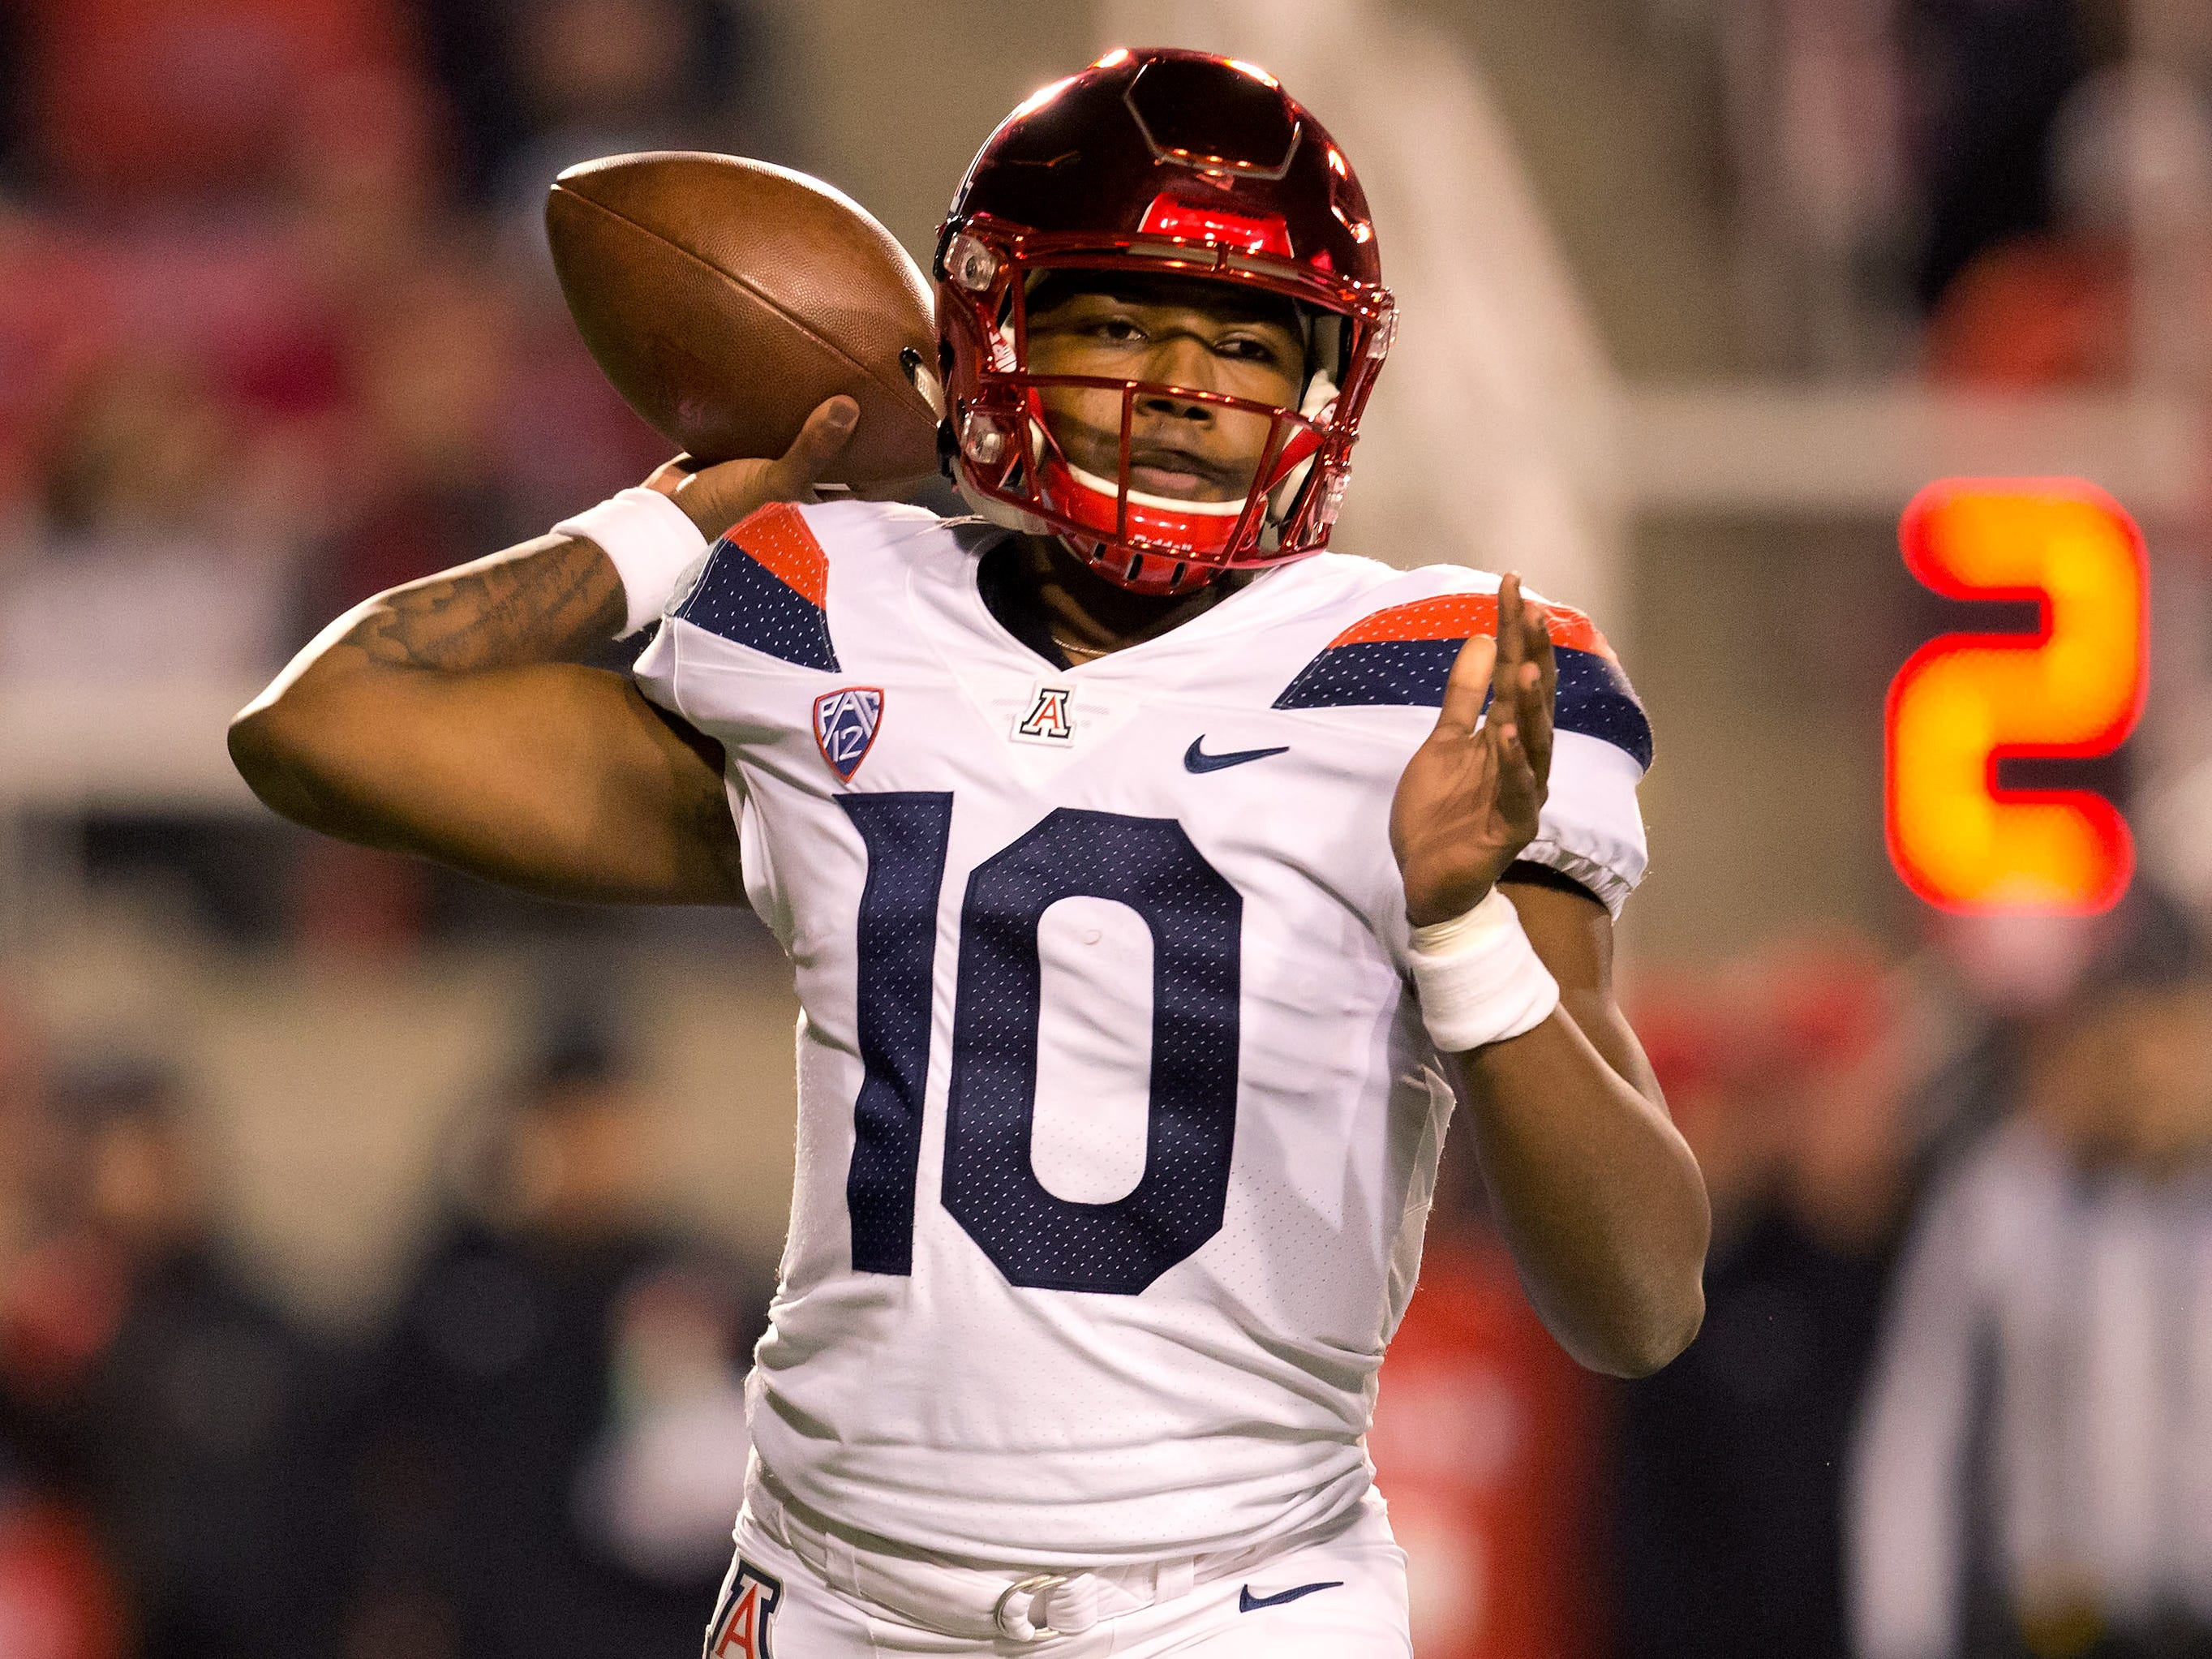 Oct 12, 2018; Salt Lake City, UT, USA; Arizona Wildcats quarterback Jamarye Joiner (10) passes the ball during the first half against the Arizona Wildcats at Rice-Eccles Stadium.